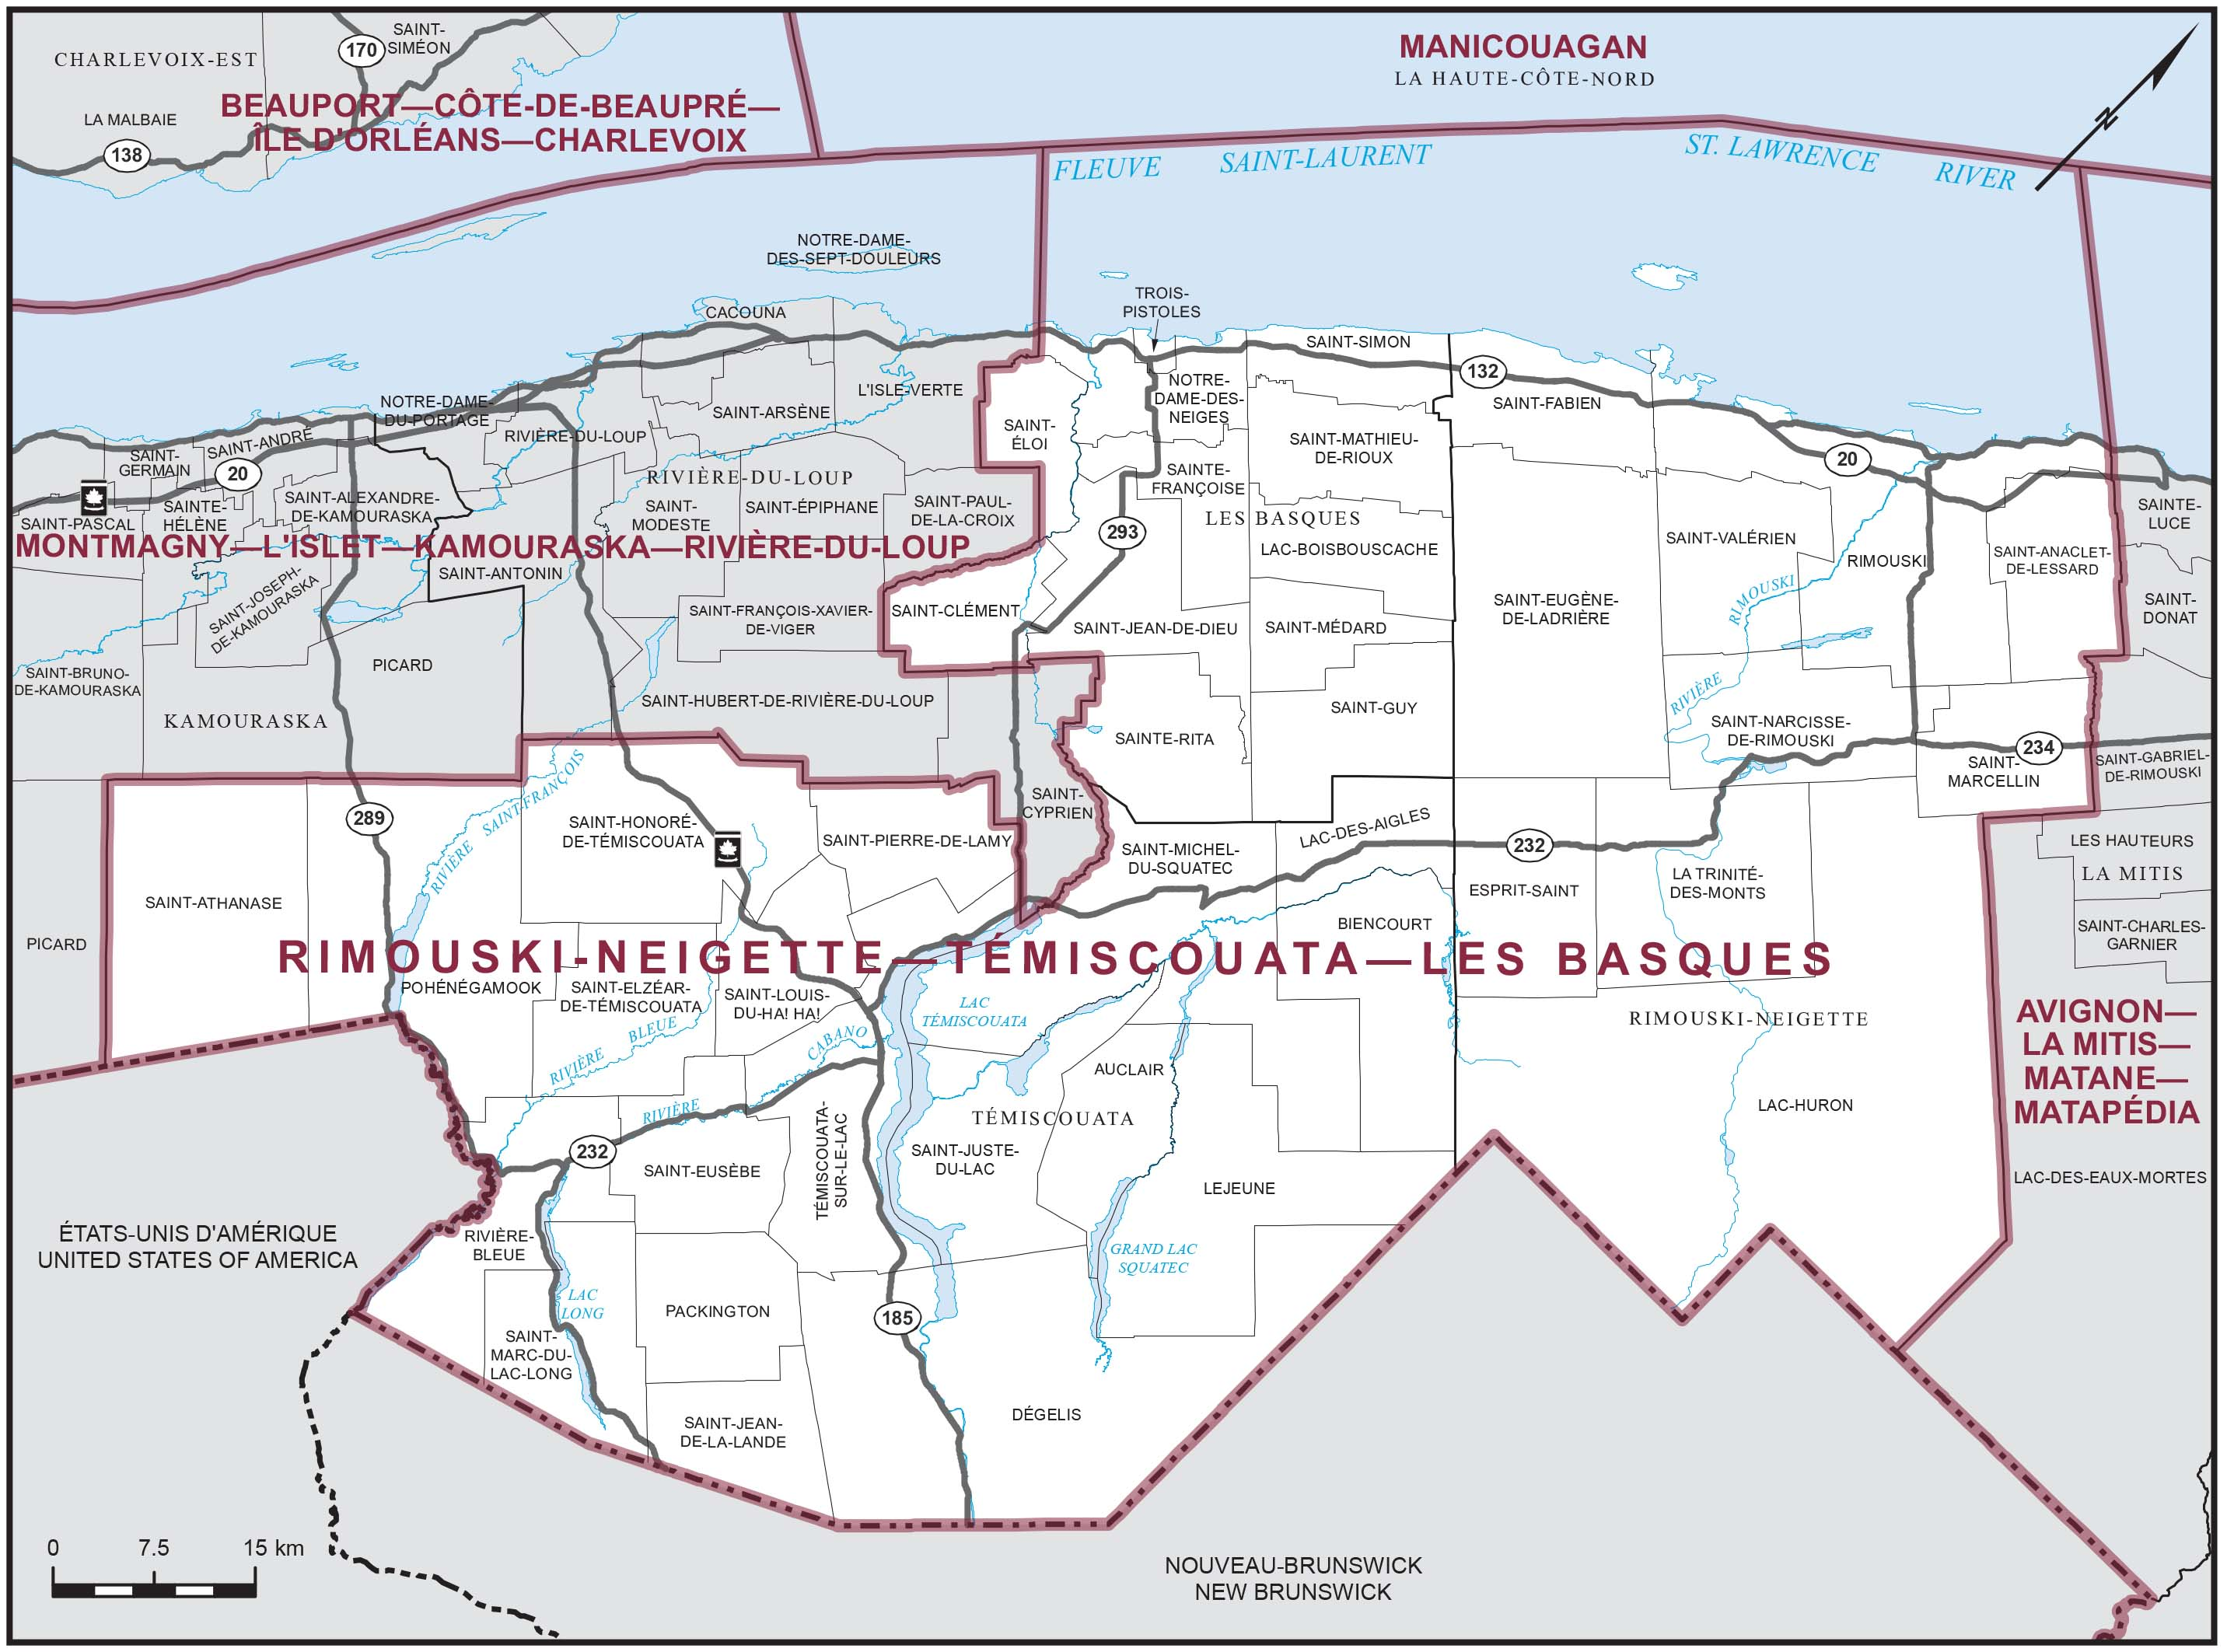 Map: Rimouski-Neigette--Témiscouata--Les Basques, Federal electoral district, 2013 Representation Order (in white), Quebec